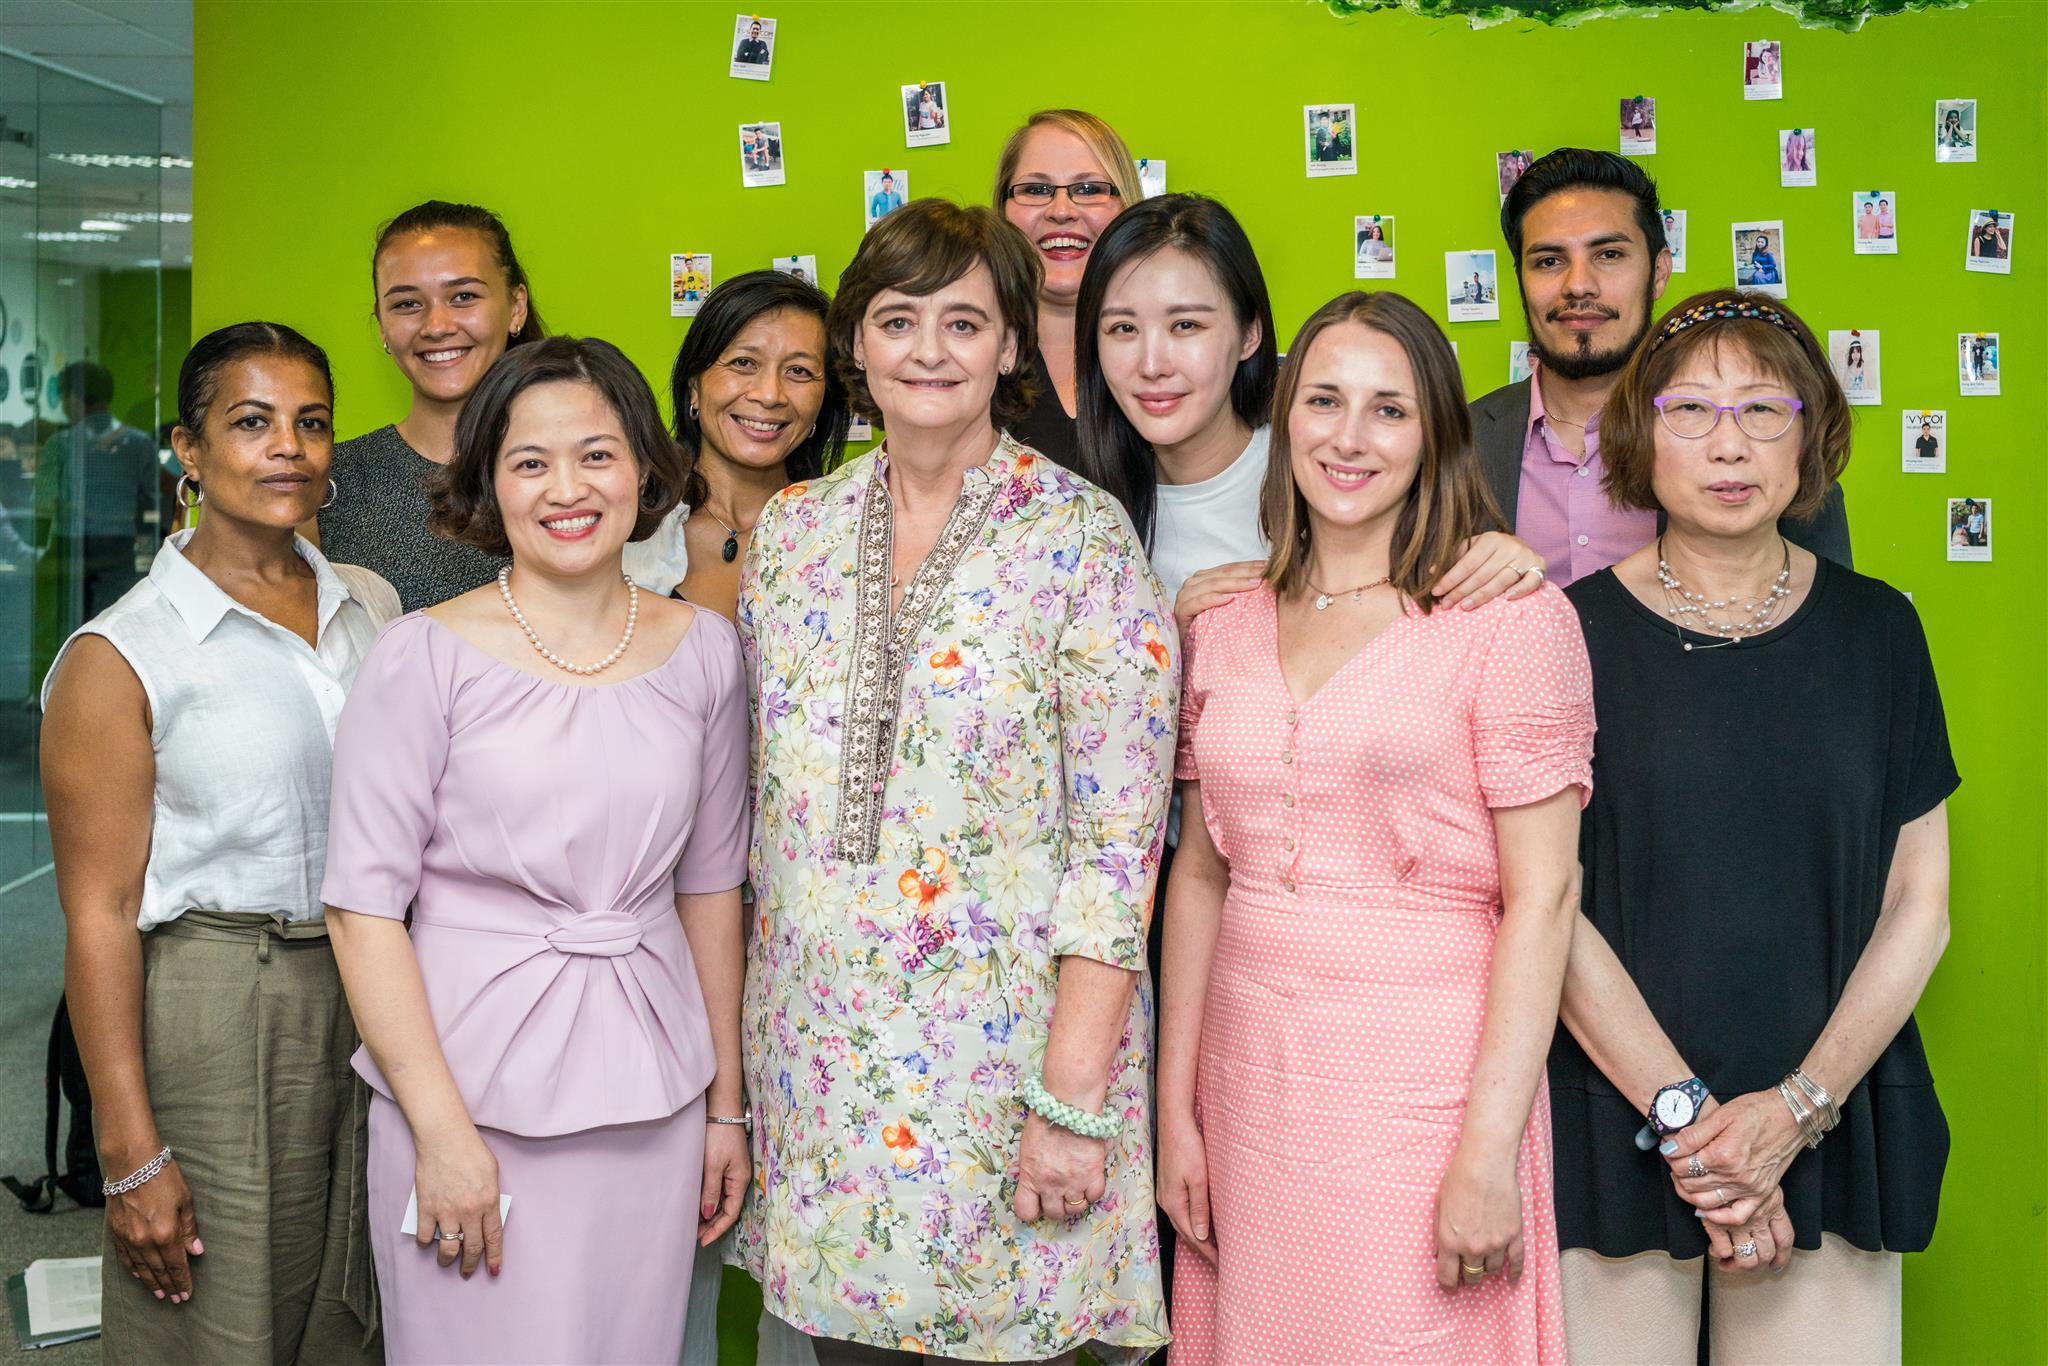 Cherie Blair, Cherie Blair Foundation for Women, Qualcomm, Van Dang, Savvycom